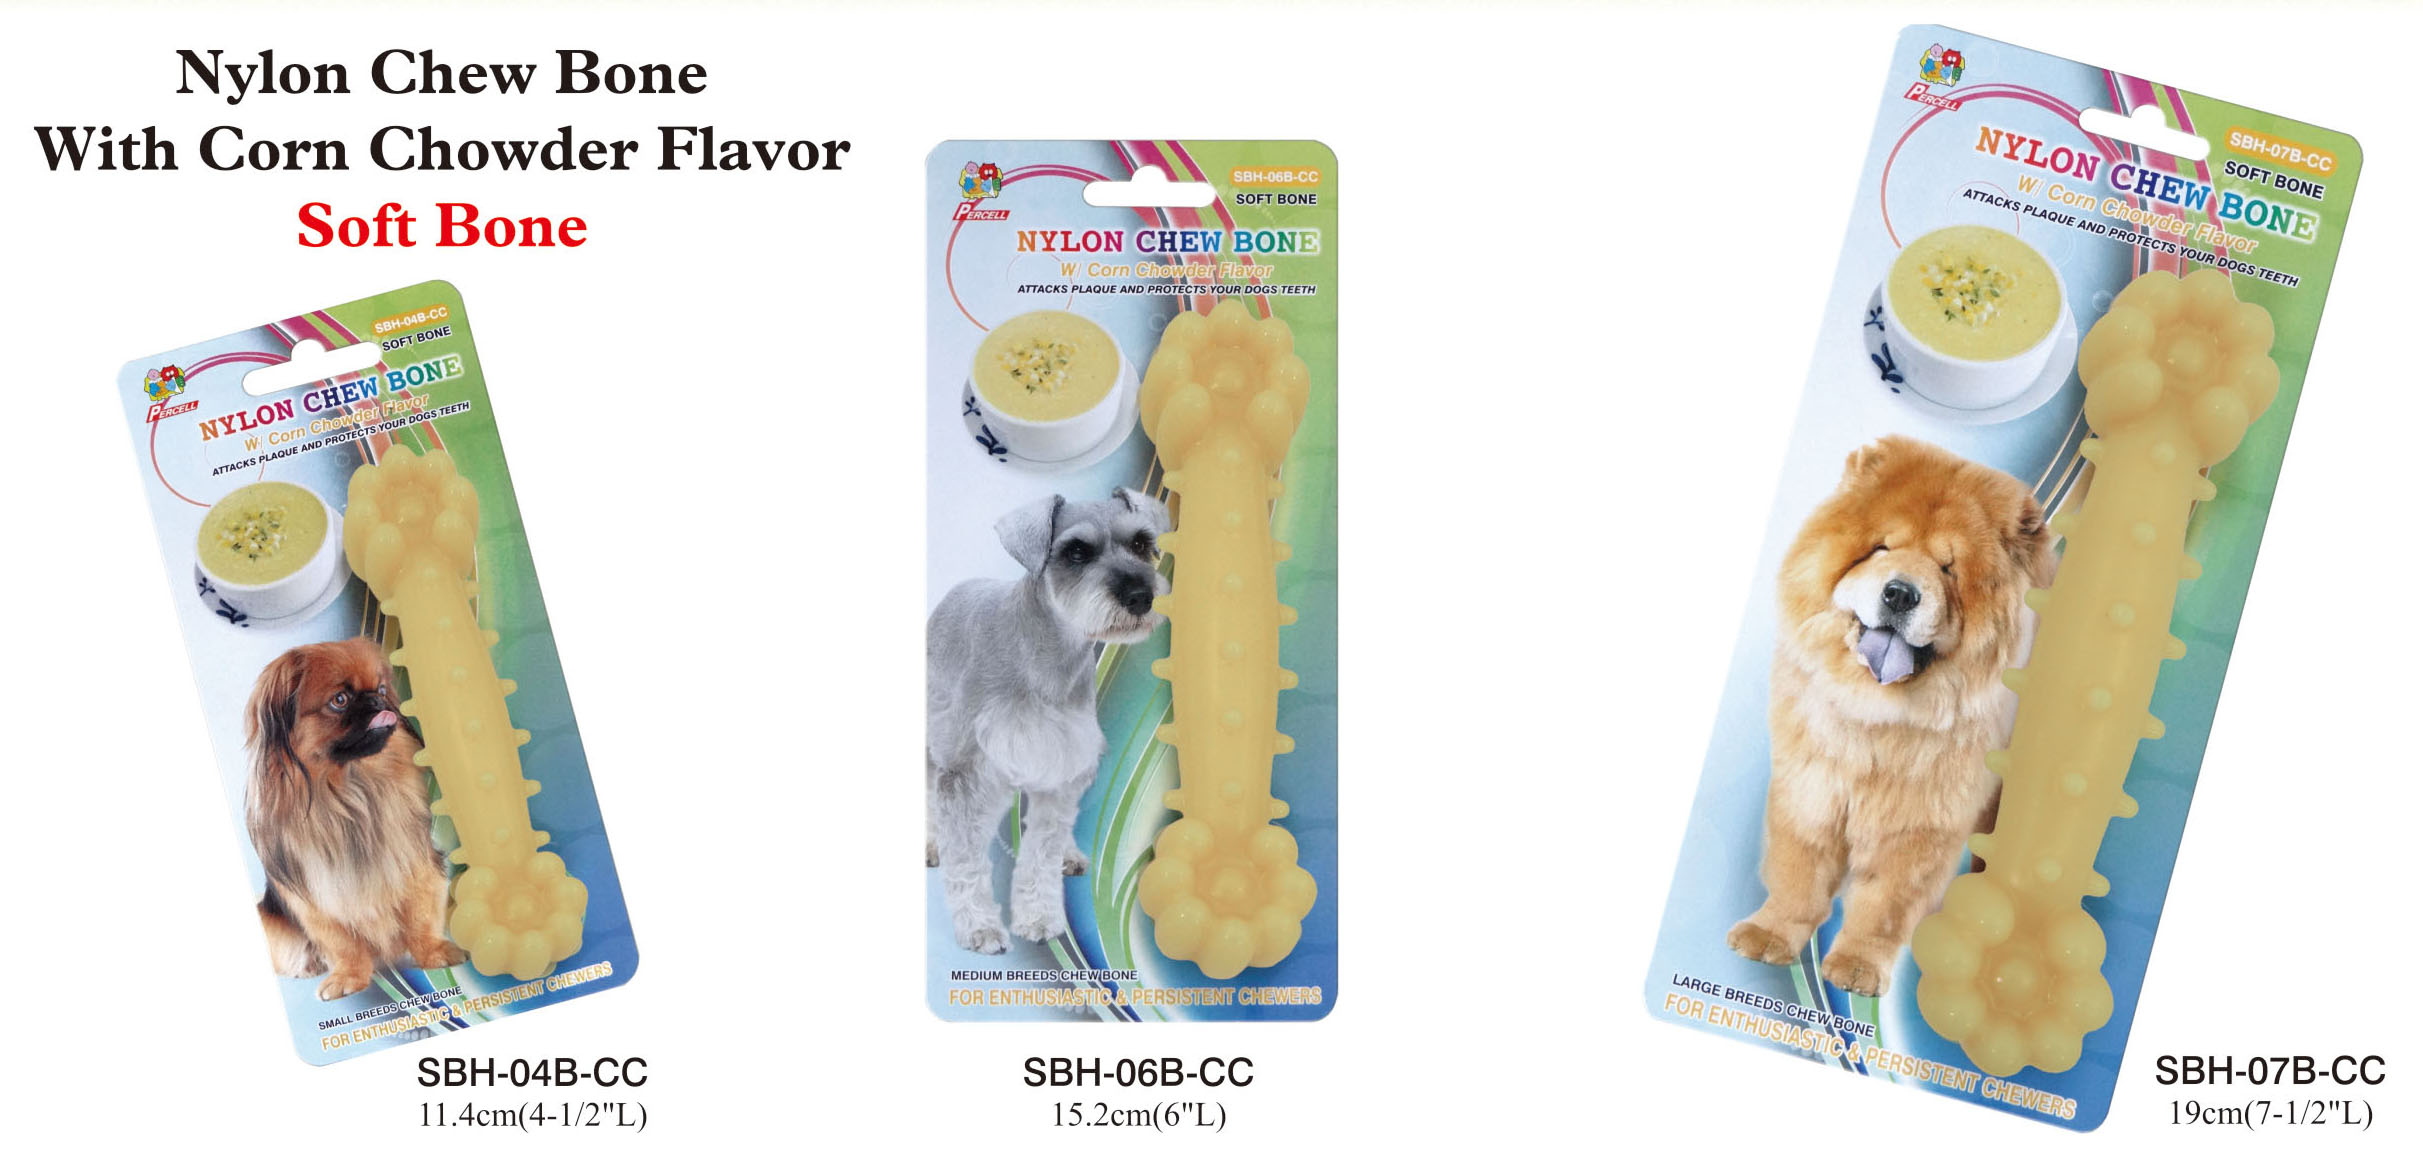 corn chowder scented nylon chew bone - small, medium and large